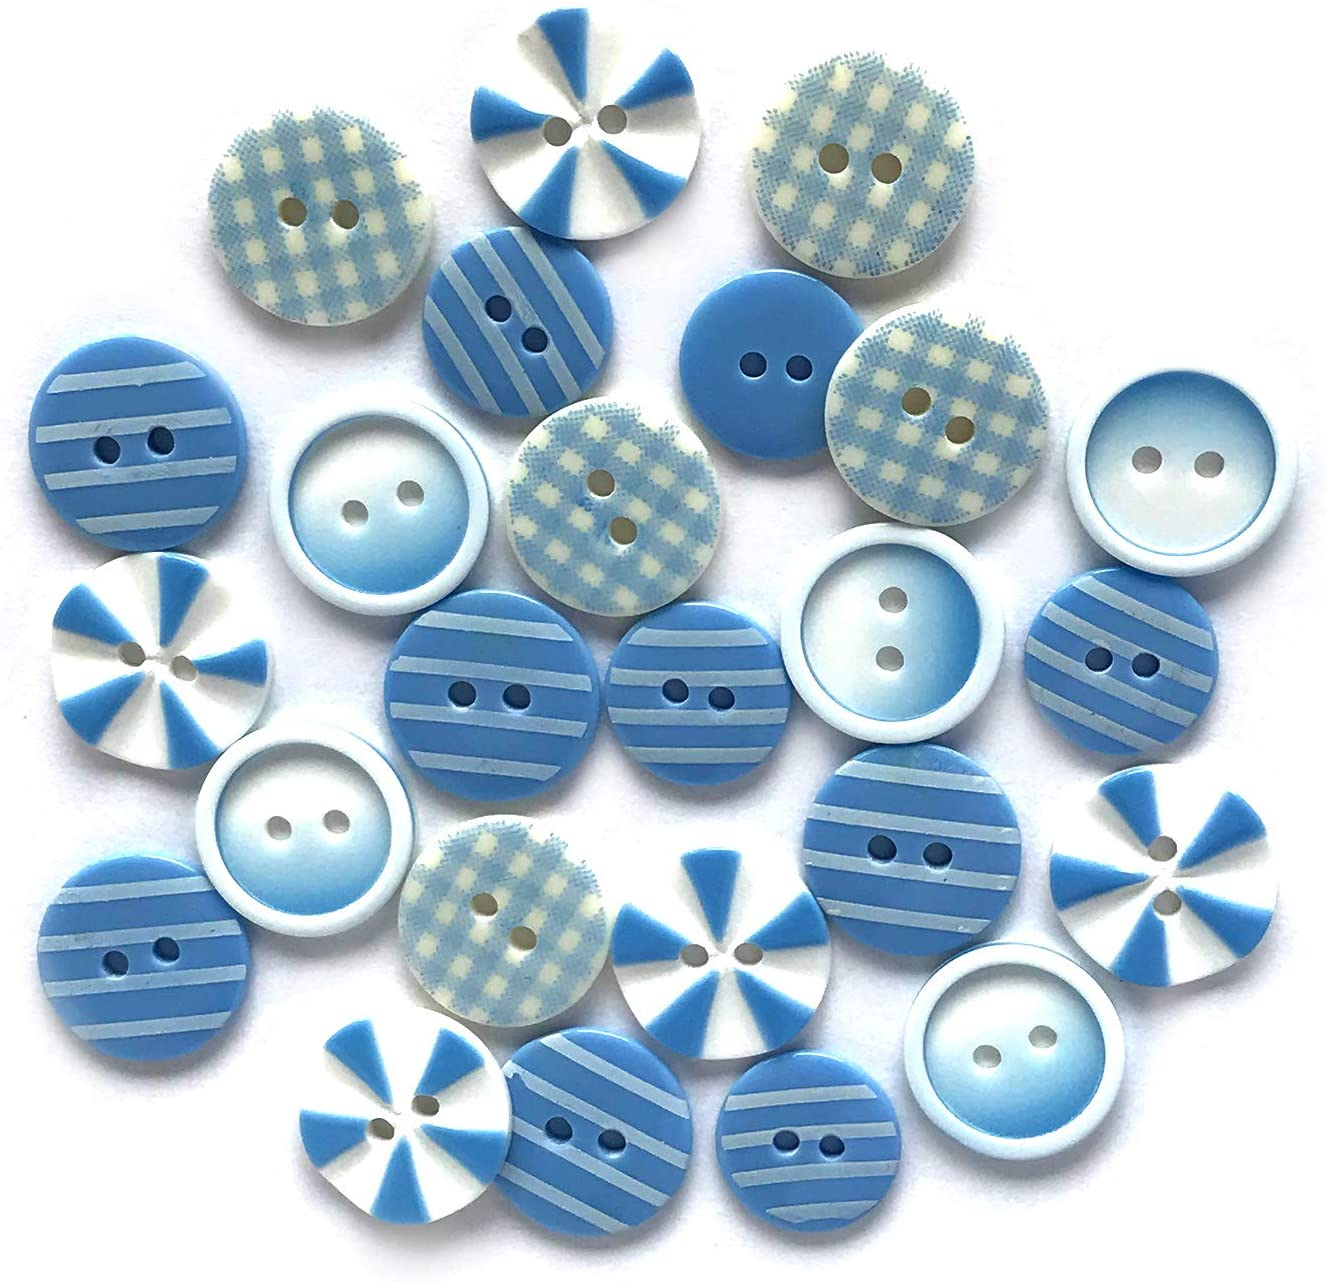 Buttons Galore Printed Craft & Sewing Buttons - Blues Medley - Set of 3 Packs Total 60 Buttons